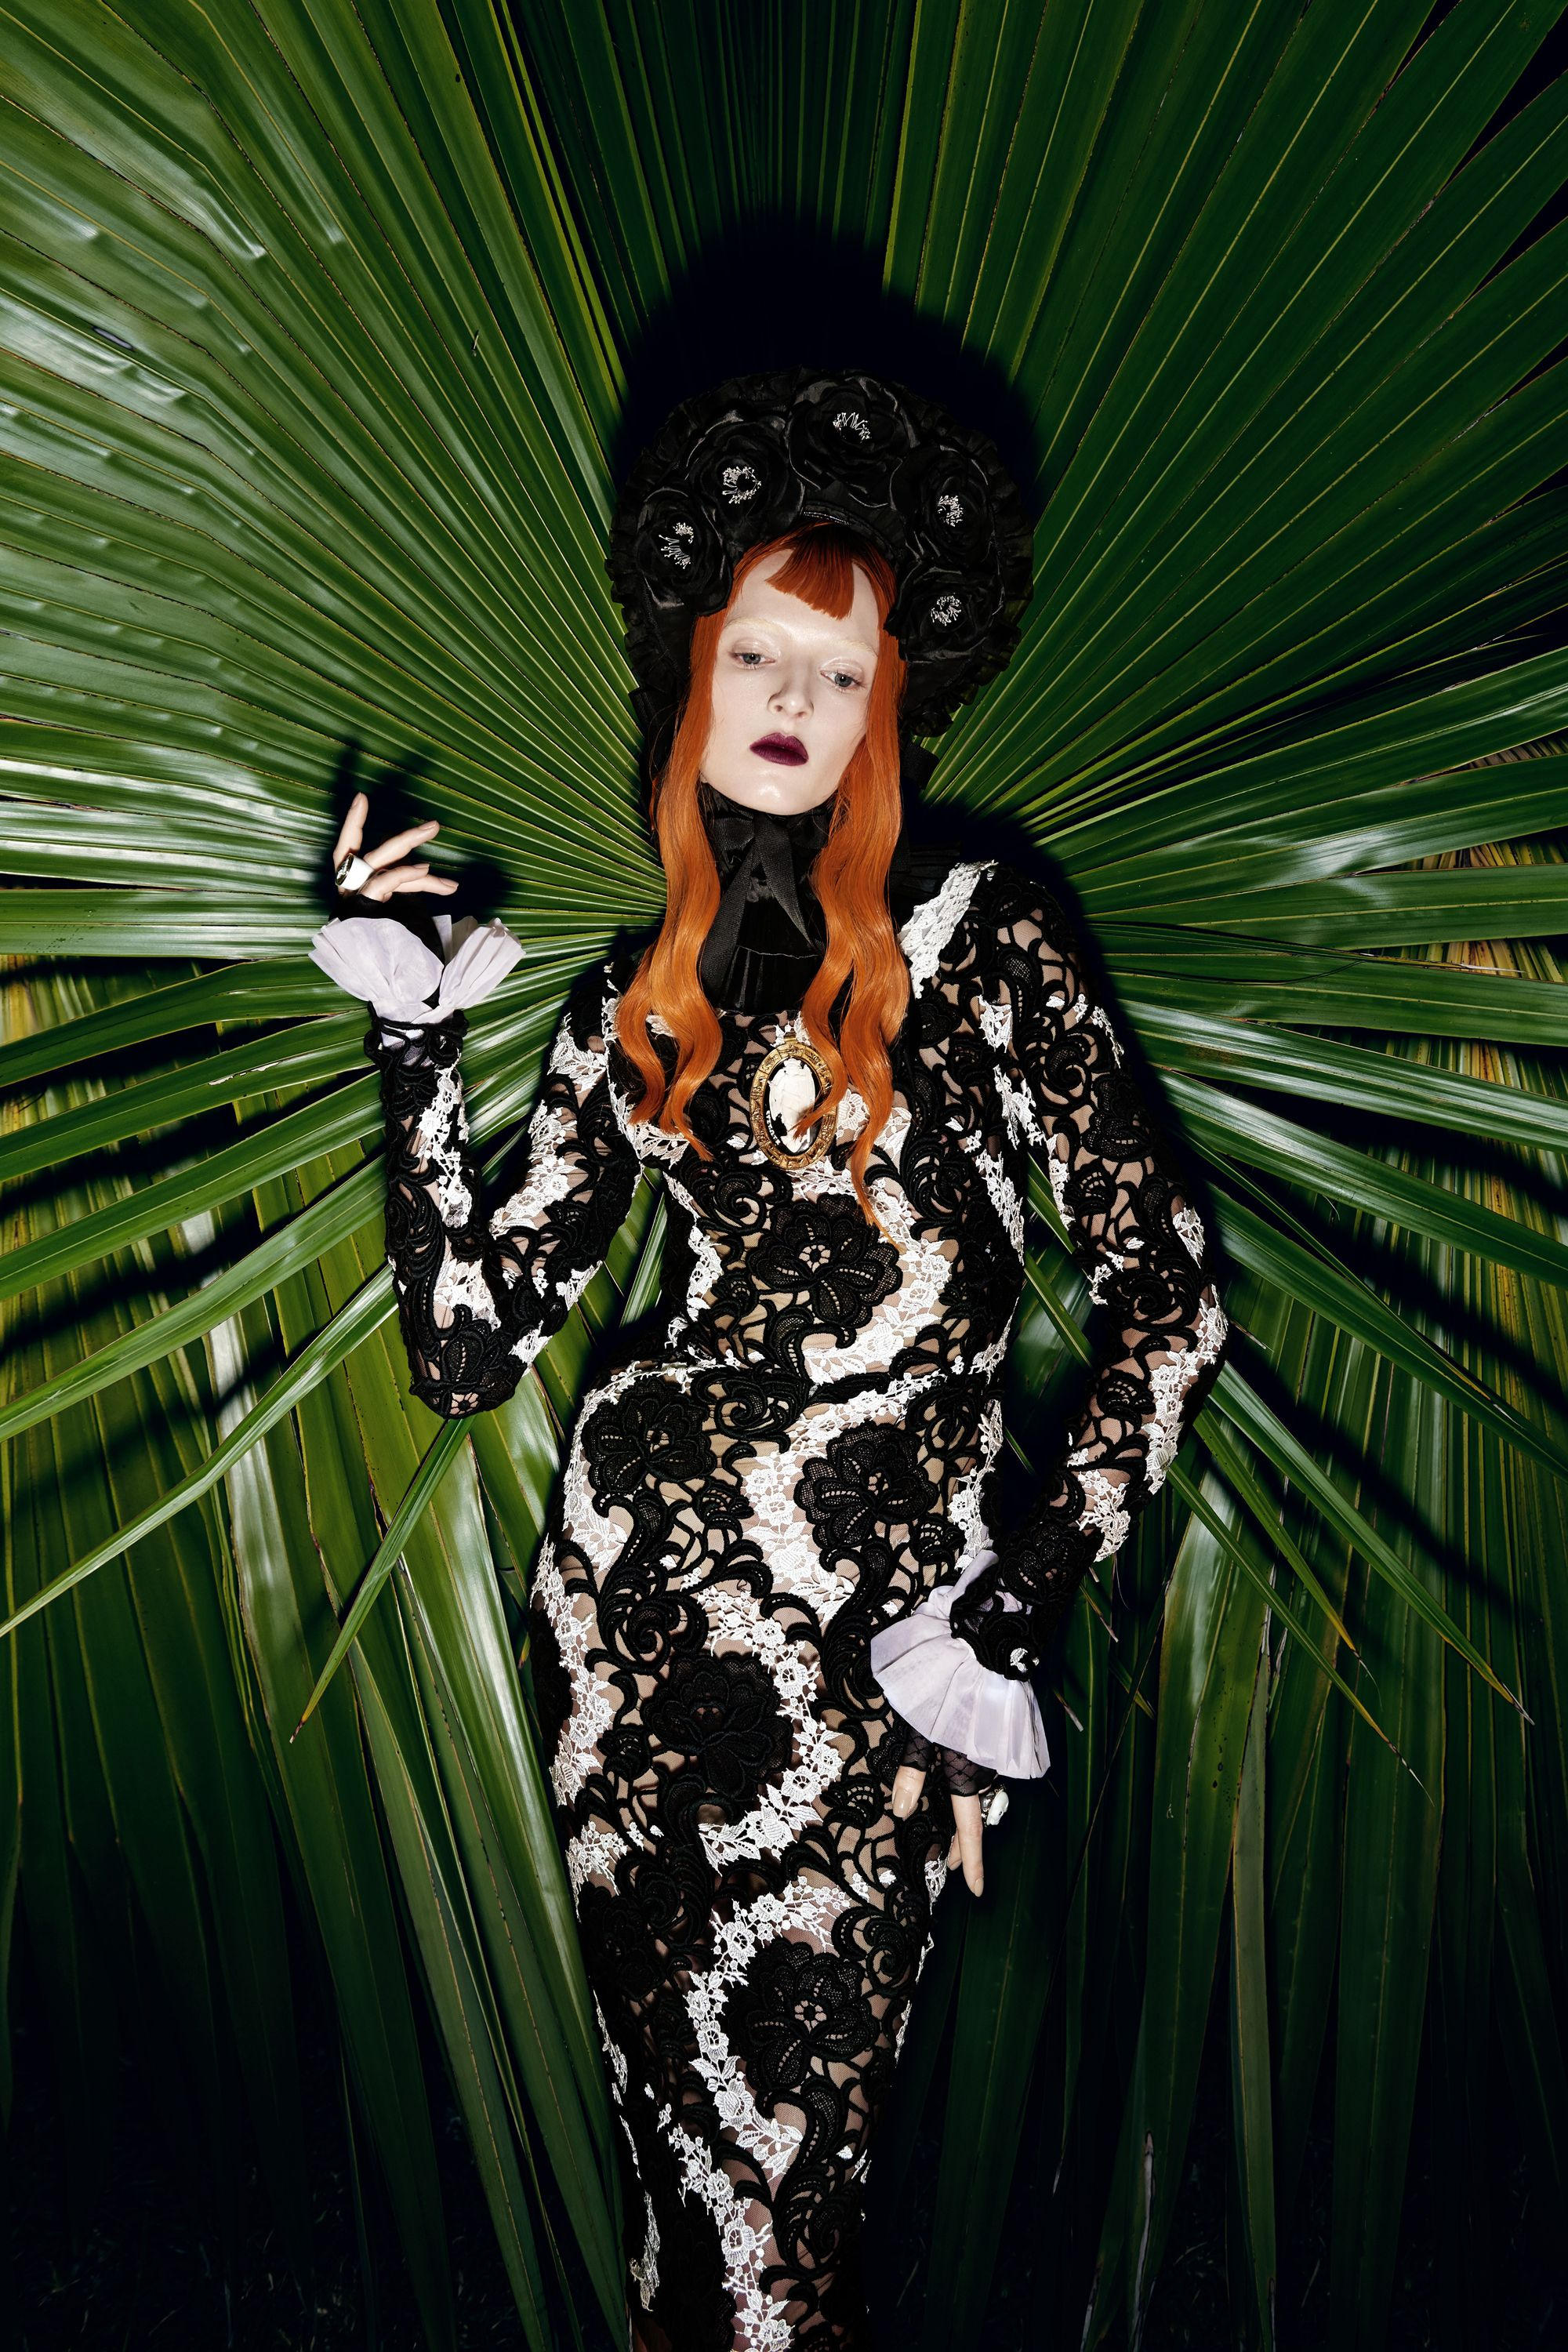 <p>As alluring as the french polynesian landscape, fall's victorian trend—black lace, high necklines, and fanciful flounces—turns up the heat.</p><p>Dress, Price Upon Request, Dolce & Gabbana; Bonnet, $275, Apatico; Collar, $120, Cuffs, $155, House Of Snowball; Pendant Necklace, $495, Ktz; Fingerless Gloves, $85, Cornelia James; Rings, From $2,035 Each, Amedeo.</p>